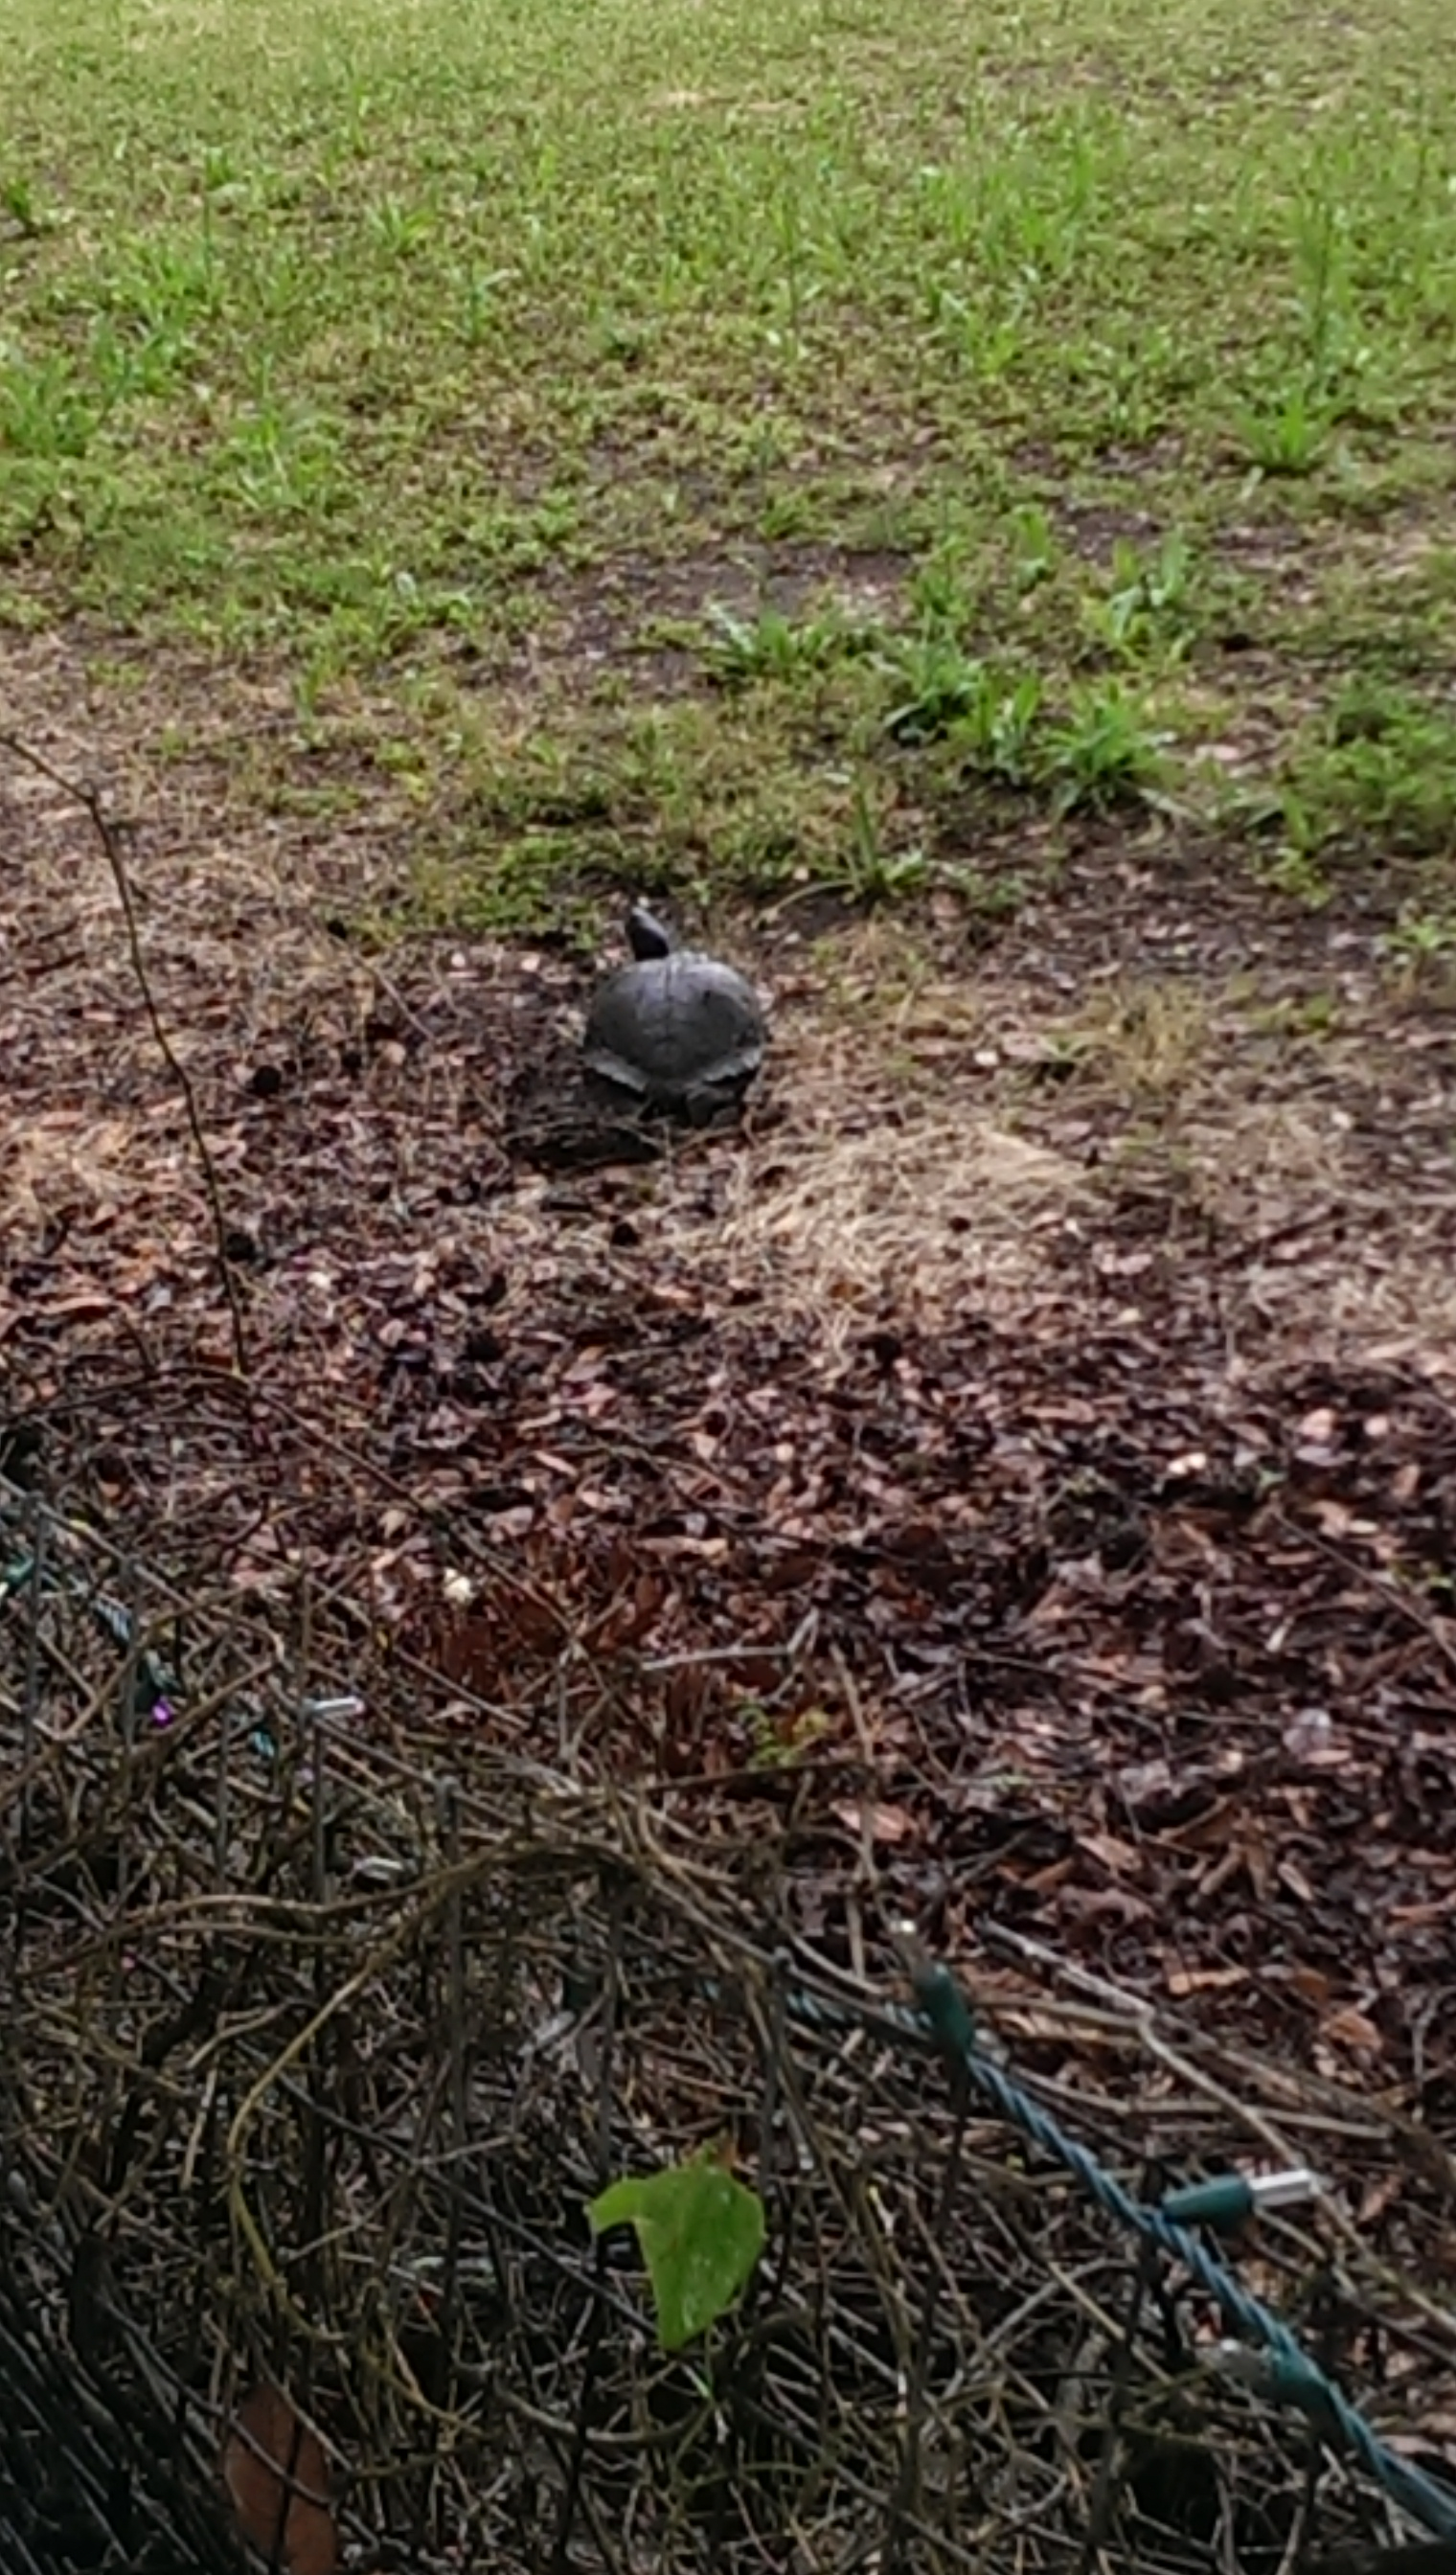 turtle laying eggs by the swash